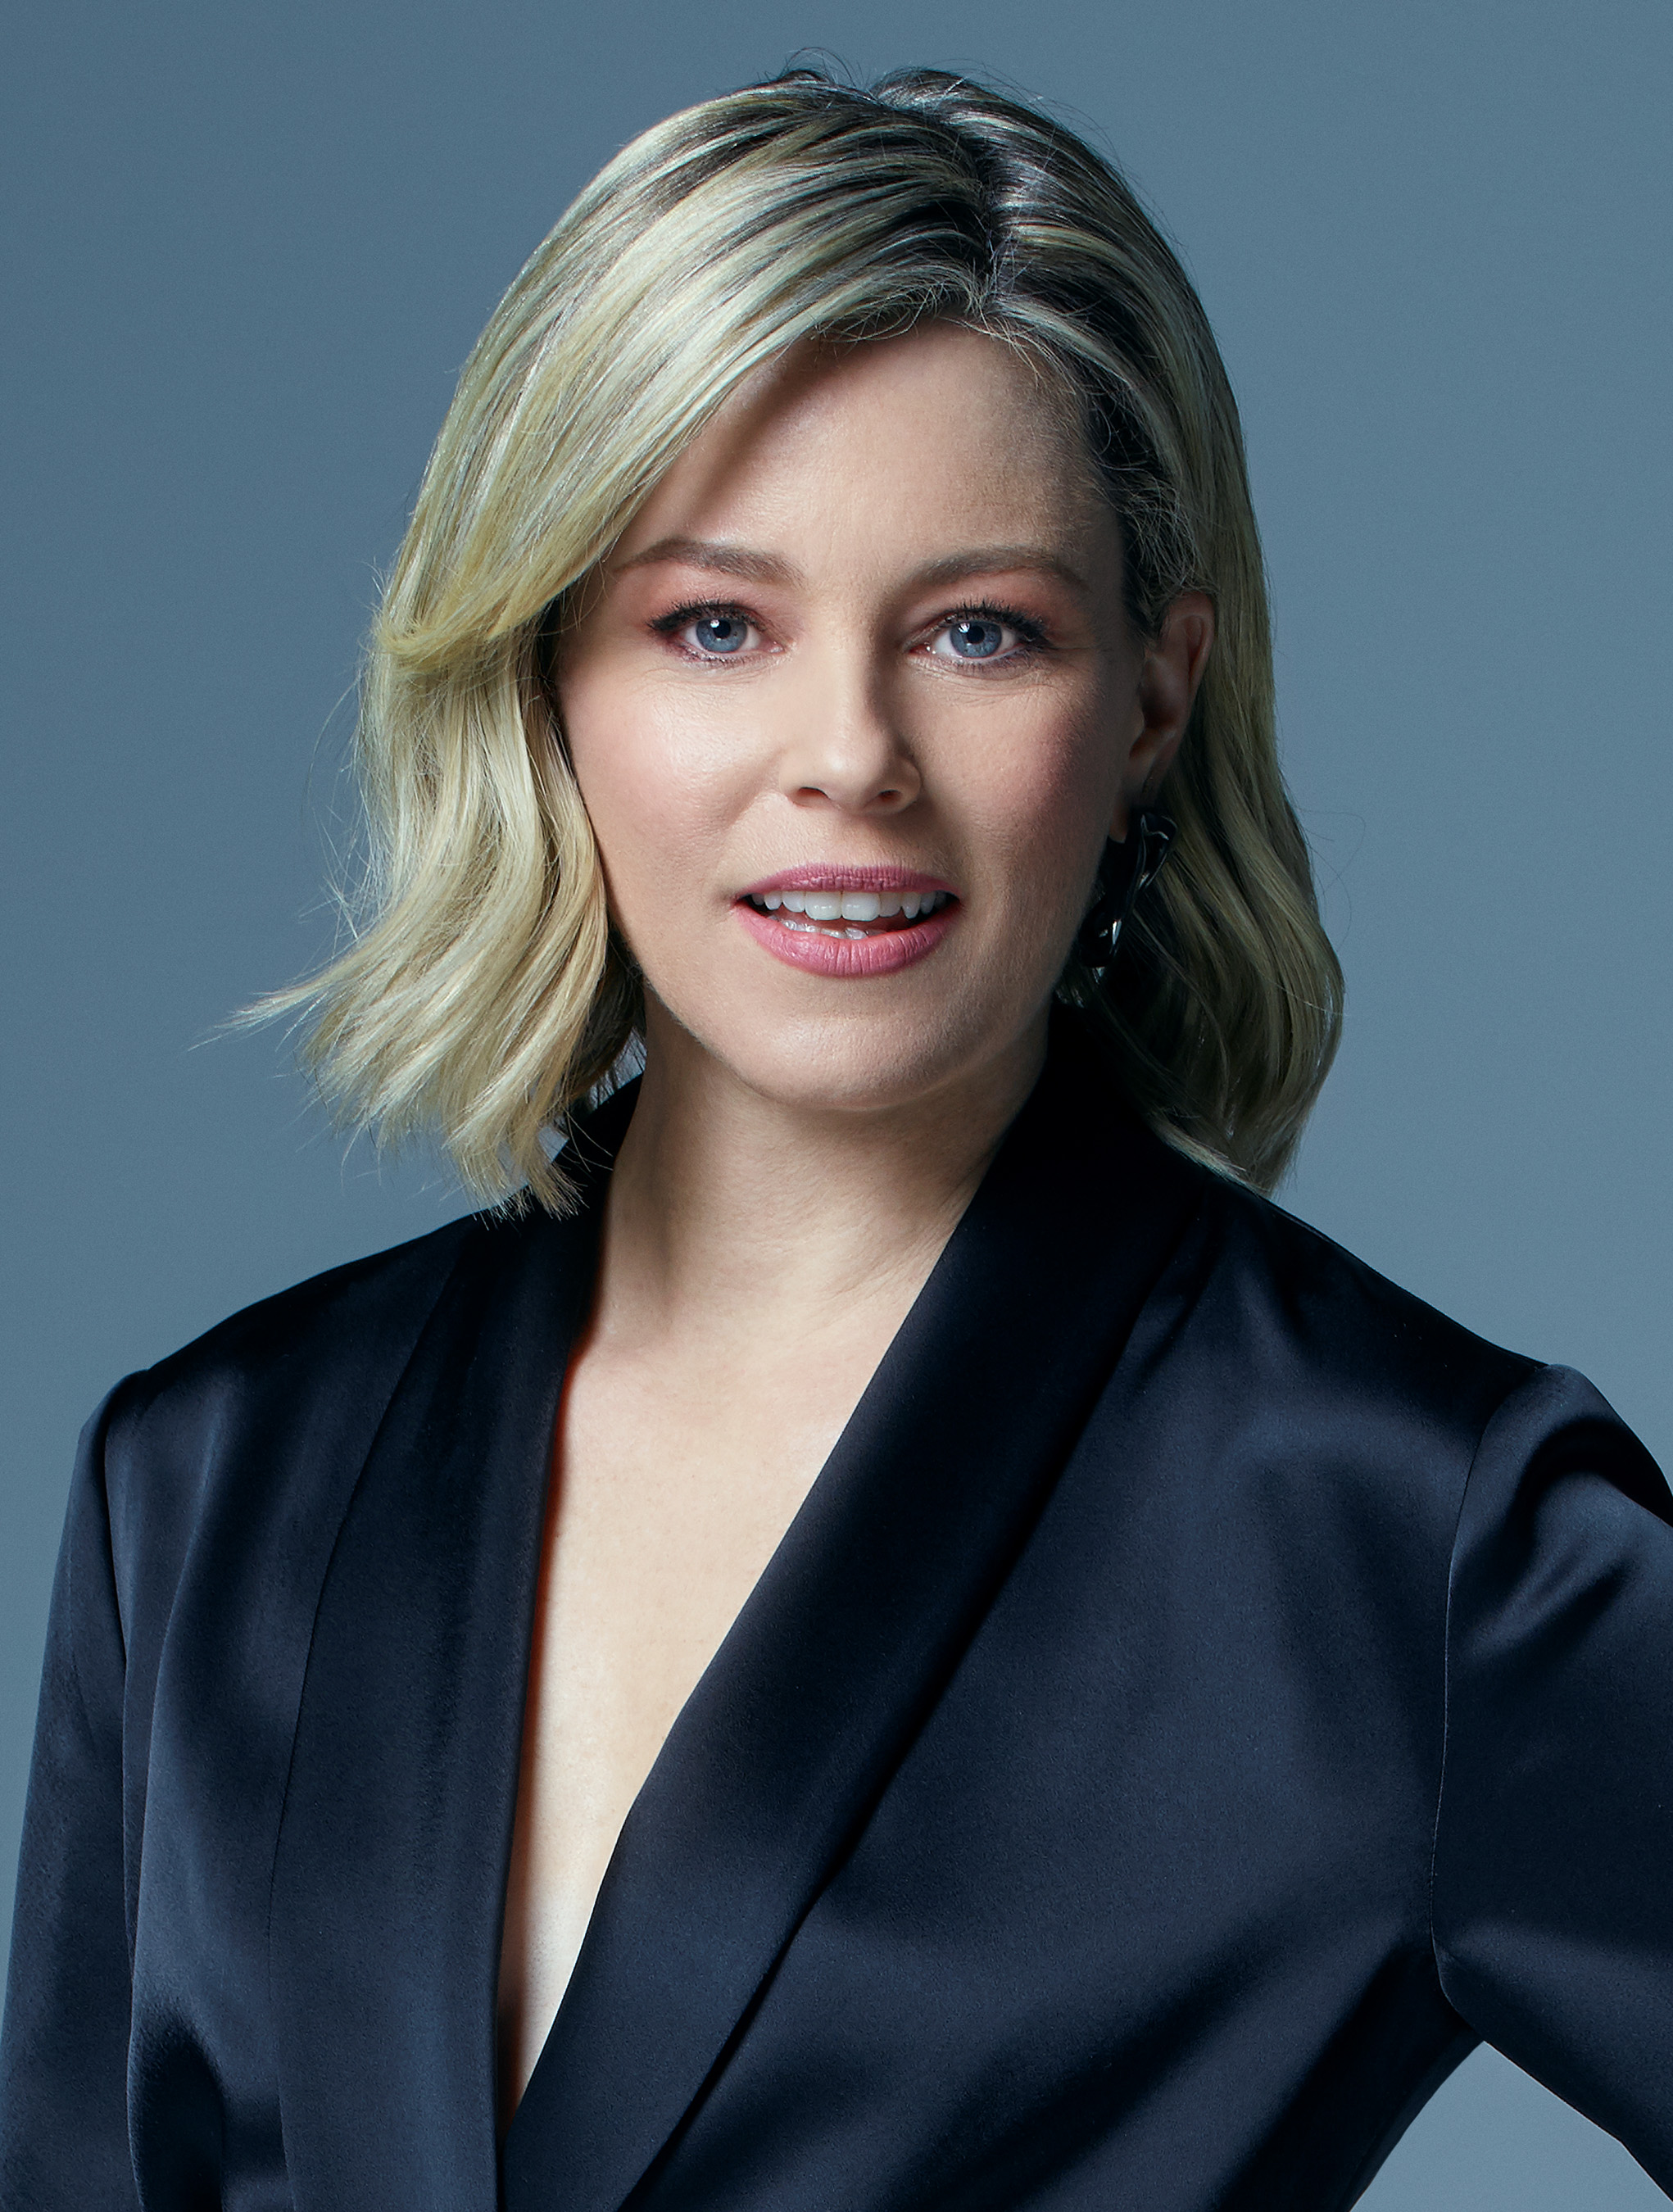 Elizabeth Banks teams up with Jane Walker by Johnnie Walker for First Women campaign celebrating and inspiring women breaking boundaries.